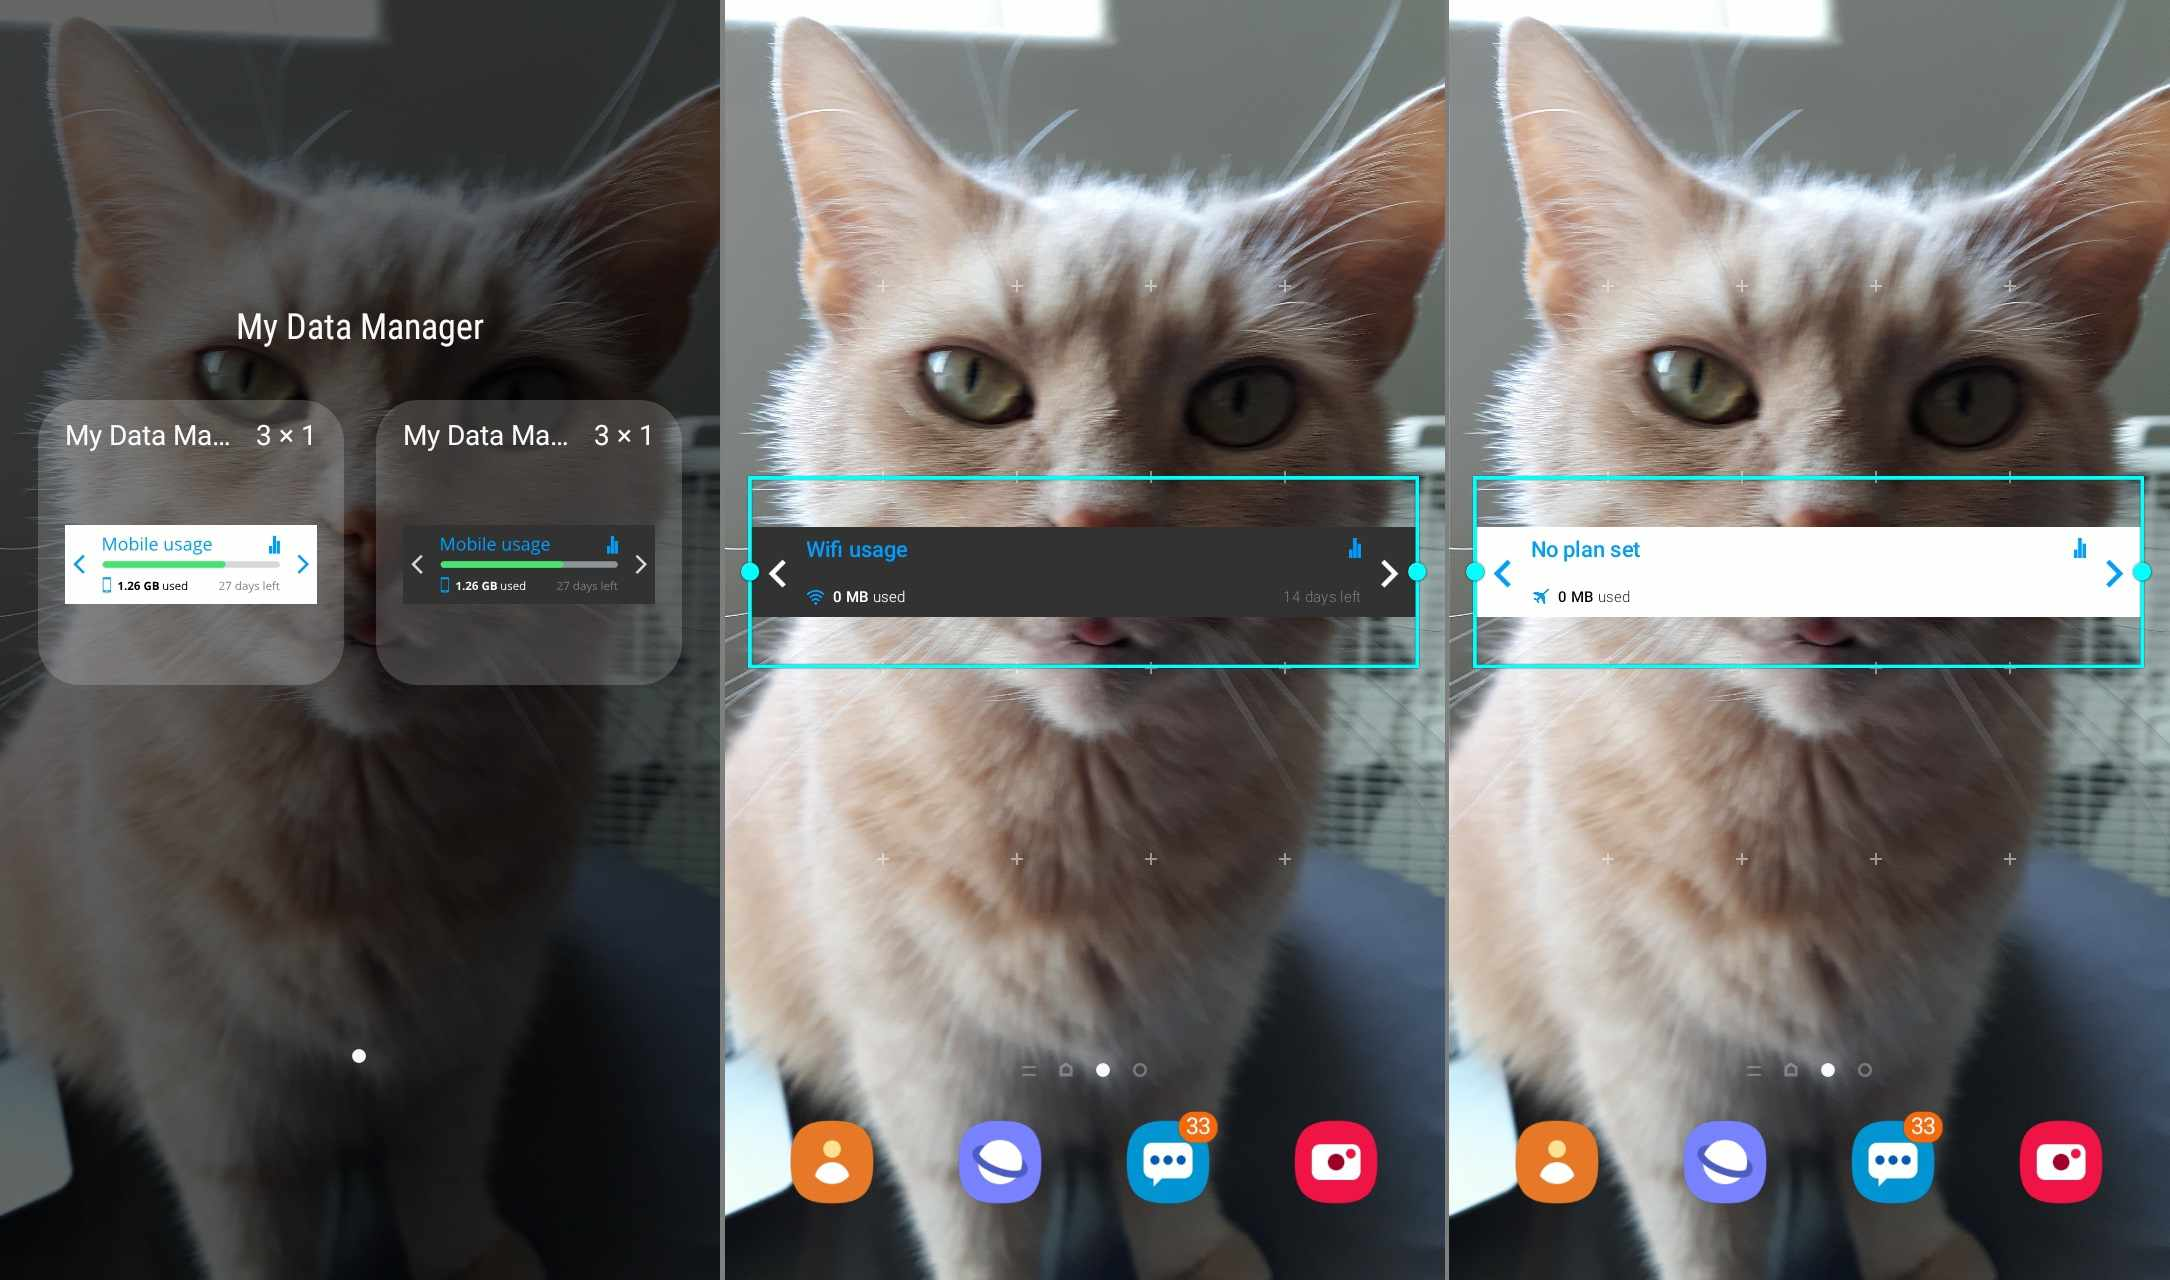 My Data Manager widget for Android